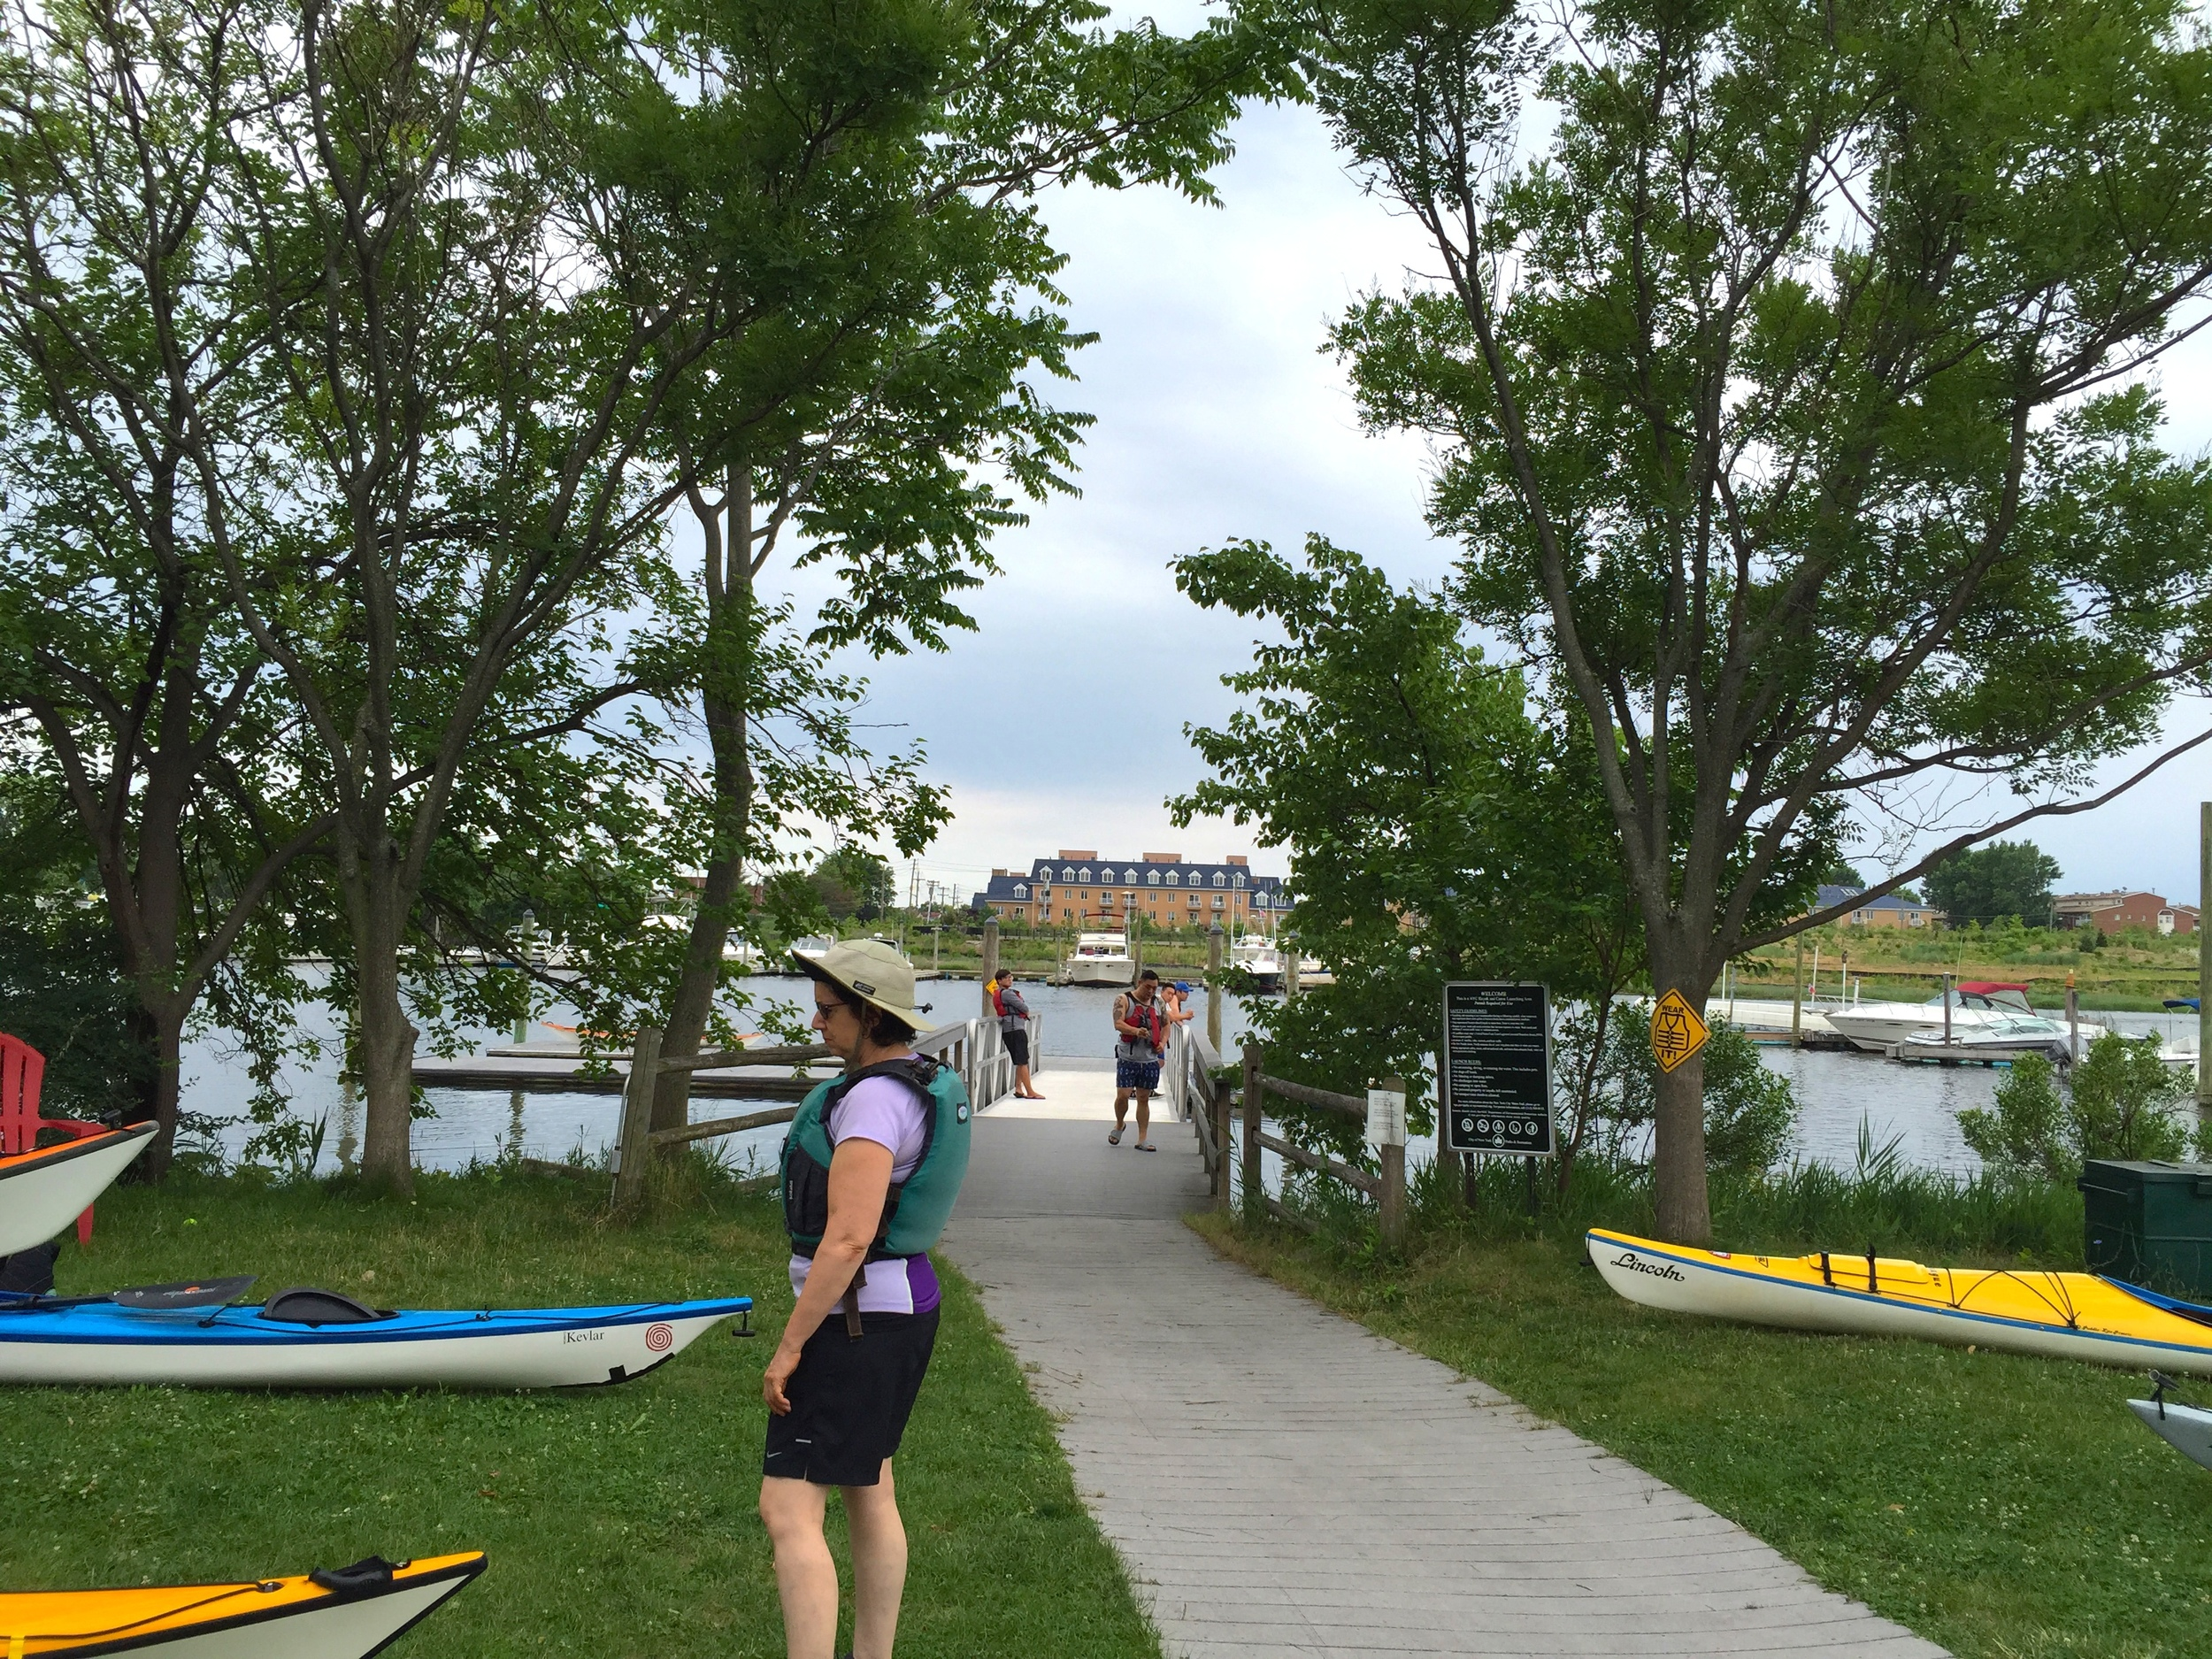 The    Sebago Canoe Club    is located in the Paerdegat Basin in Brooklyn on a beautiful lot of land right on the water that they lease from the NYC Parks Department: